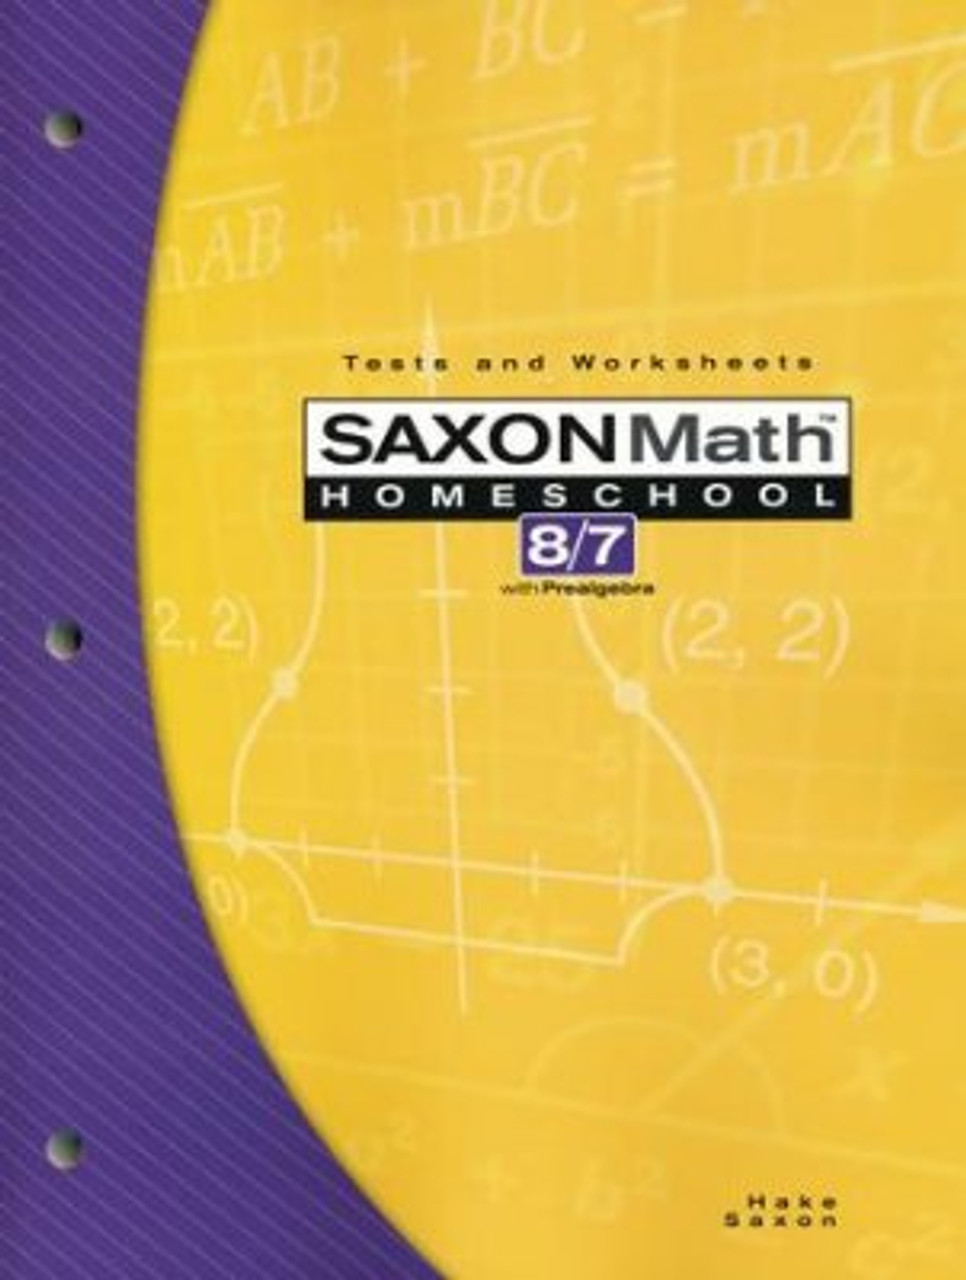 Saxon Math 8 7 3rd Edition Tests And Worksheets Classroom Resource Center [ 1280 x 966 Pixel ]